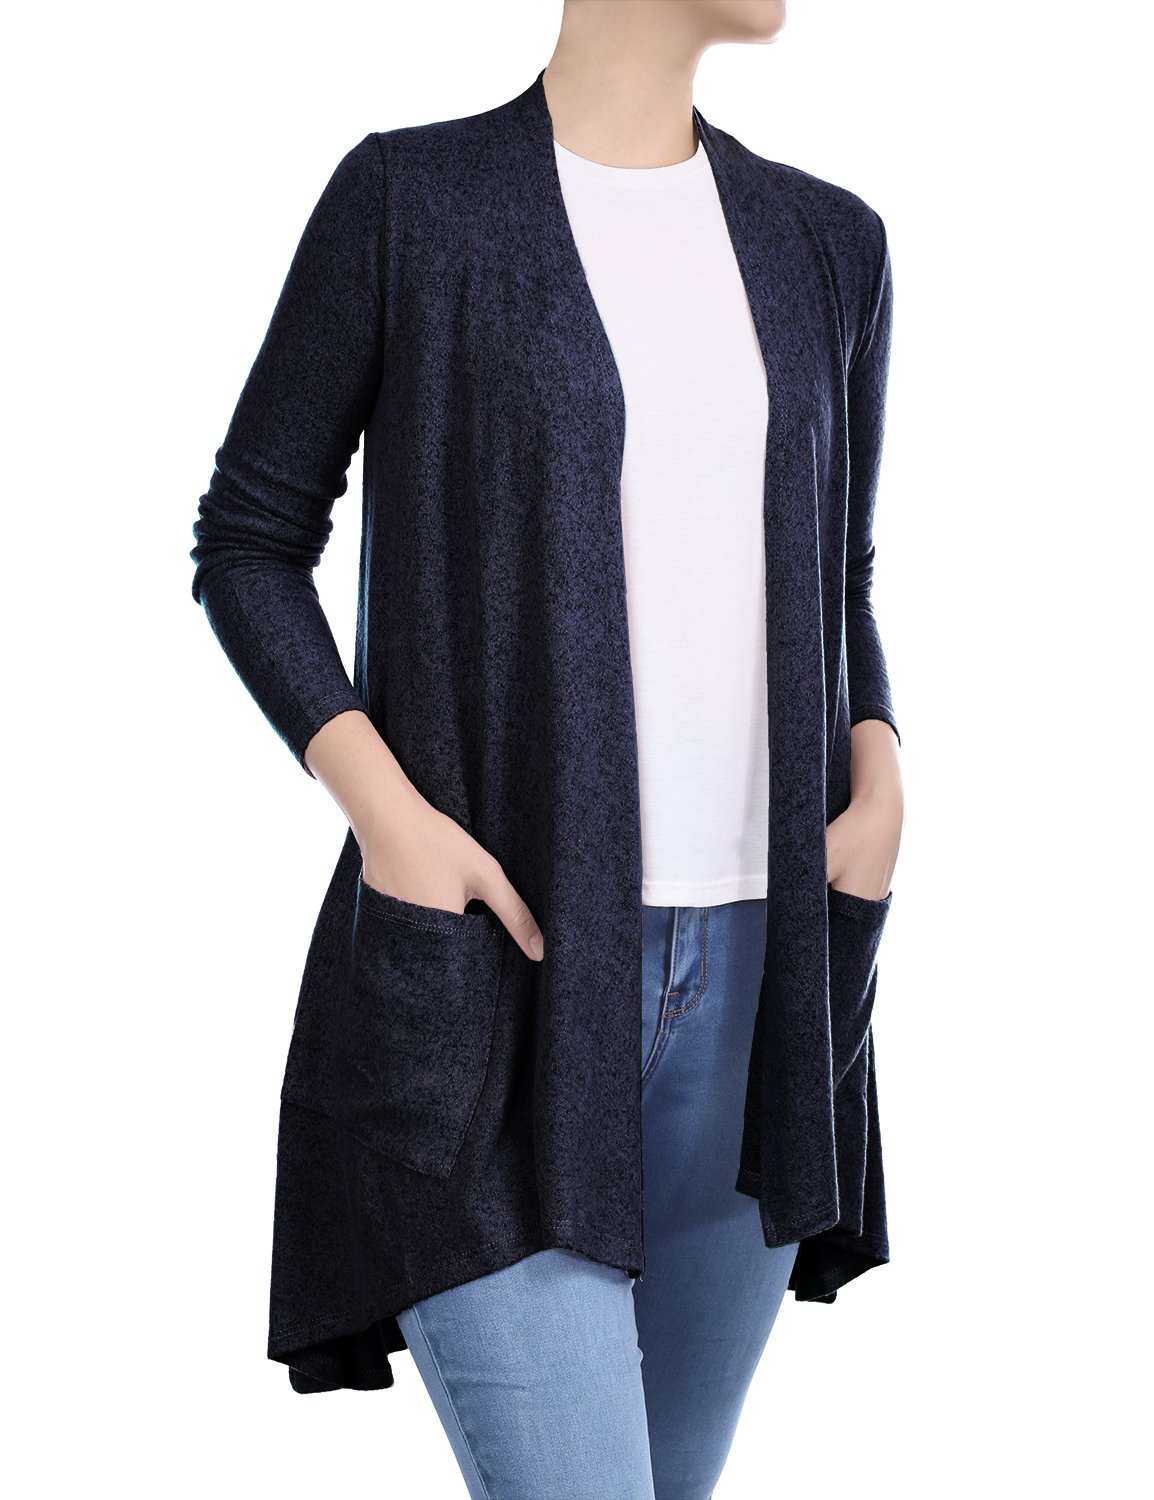 BIADANI Women Long Sleeve Classic Lightweight Front Pockets Cardigan Light Sweater Navy X-Large